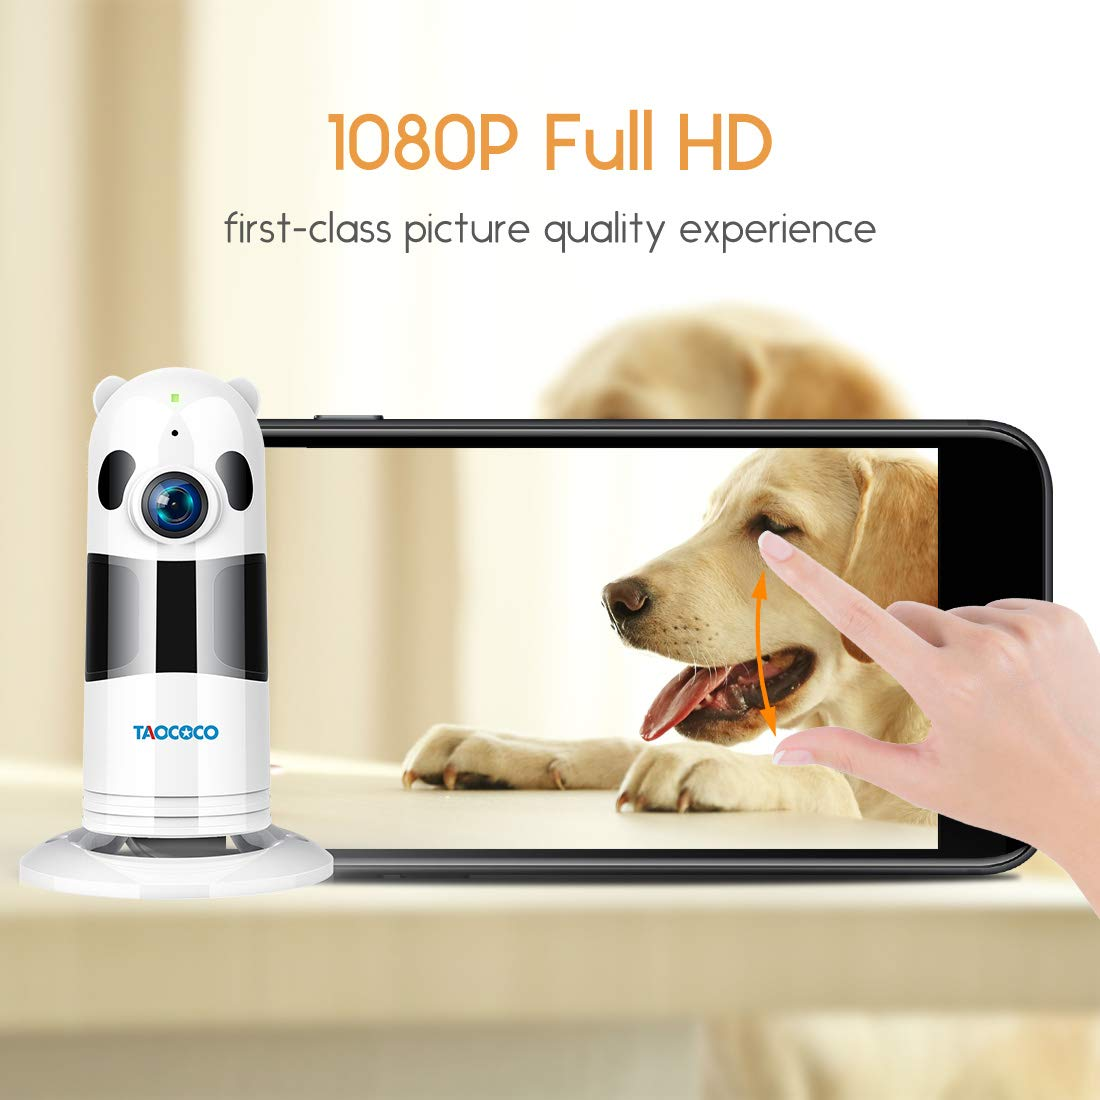 TAOCOCO Pet Camera, Dog Camera 1080P HD Pet Monitor WiFi IP Camera Surveillance Home Baby Camera for Elder Animal Baby with HD Night Vision, Motion Detection,Two Way Talking